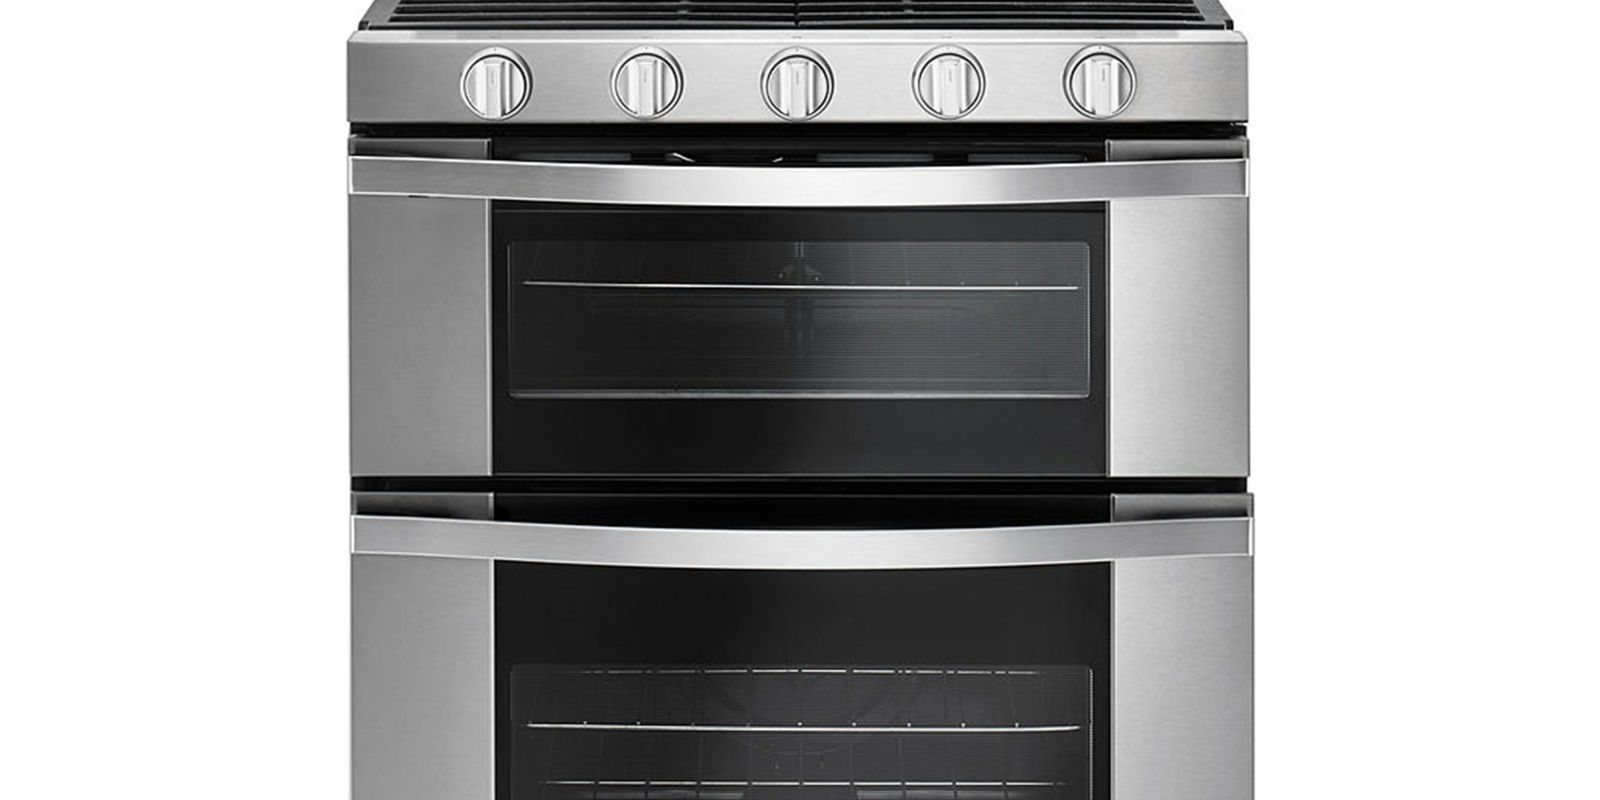 Gas Range Oven Part - 15: Ft. Double Oven Gas Range With AccuBake System #WGG555SOBS Review, Price  And Features